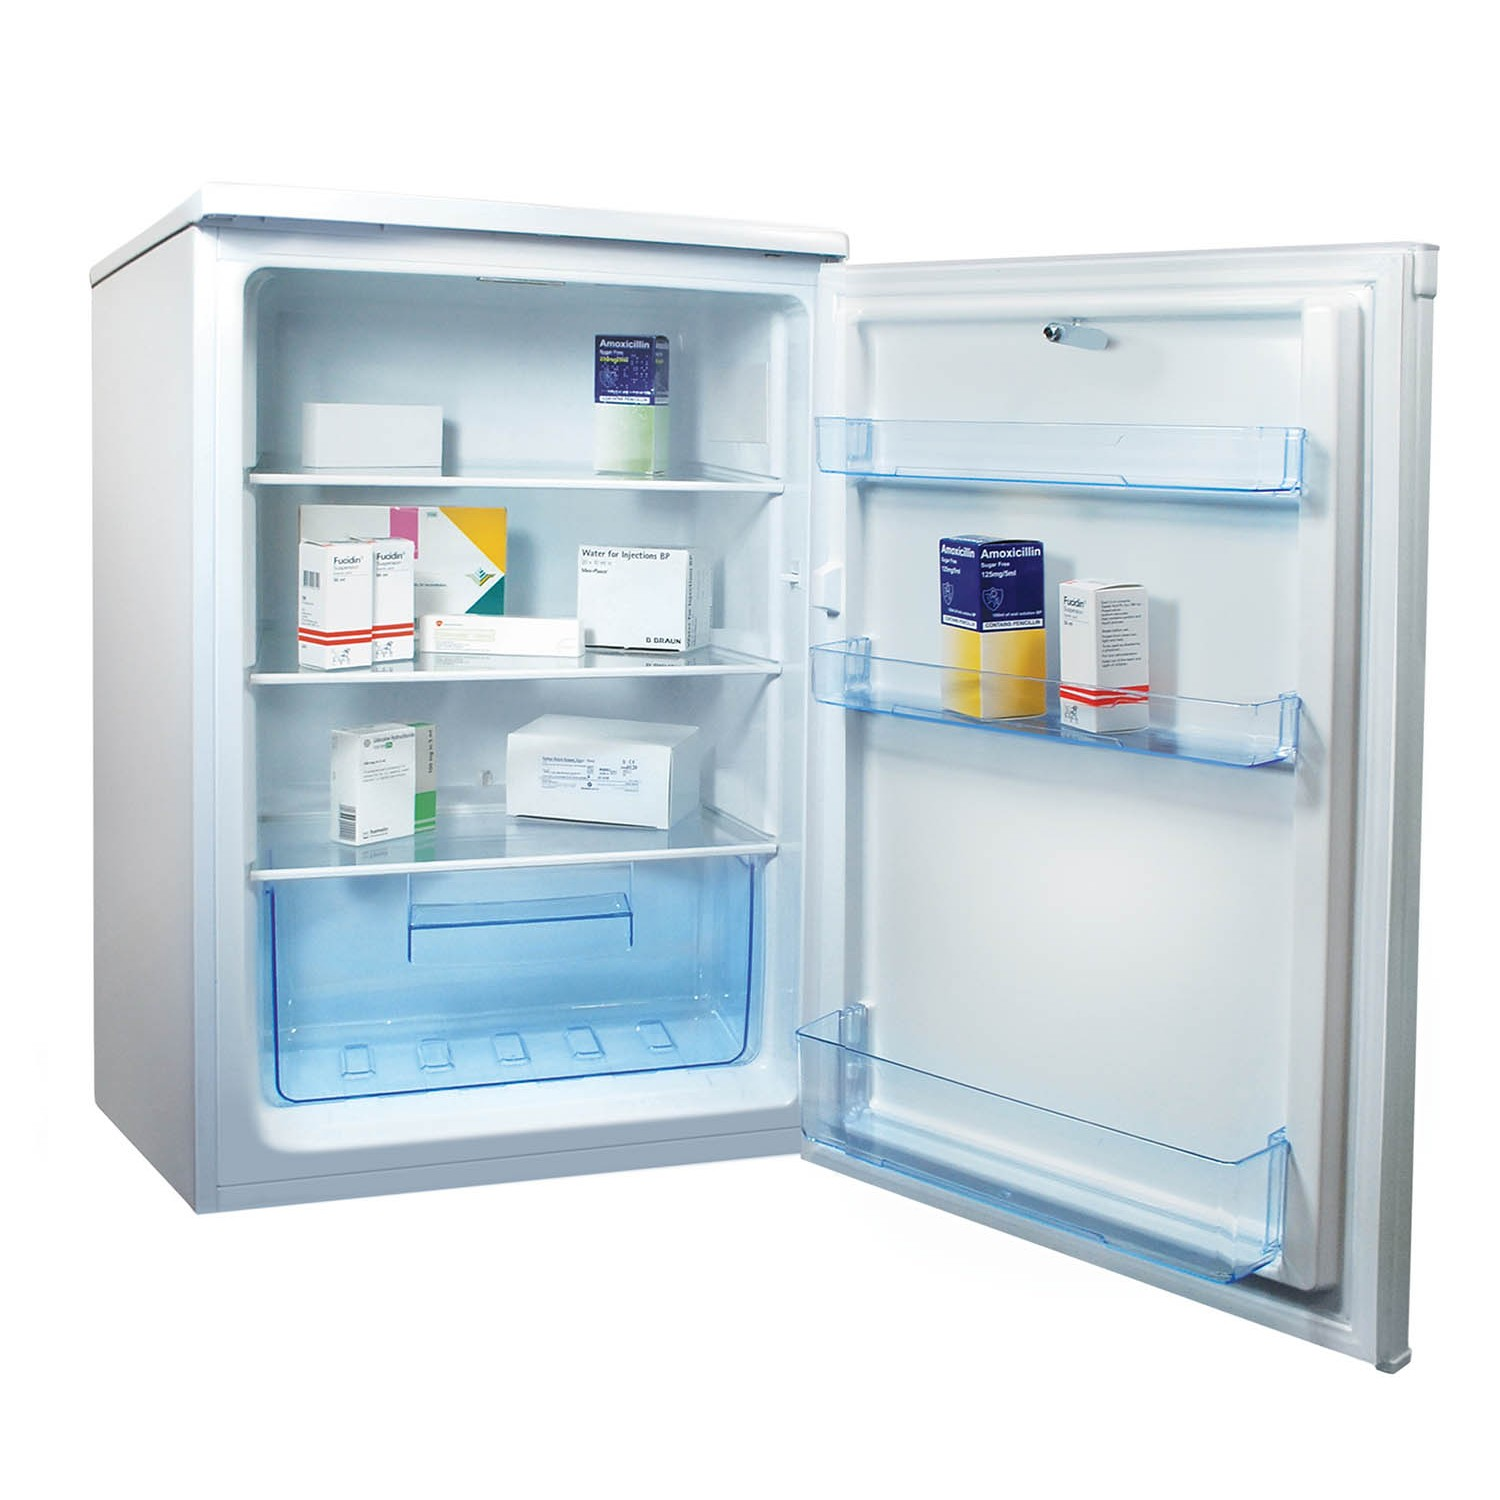 Laboratory Fridge, 130 litres, under bench, Lec Basic